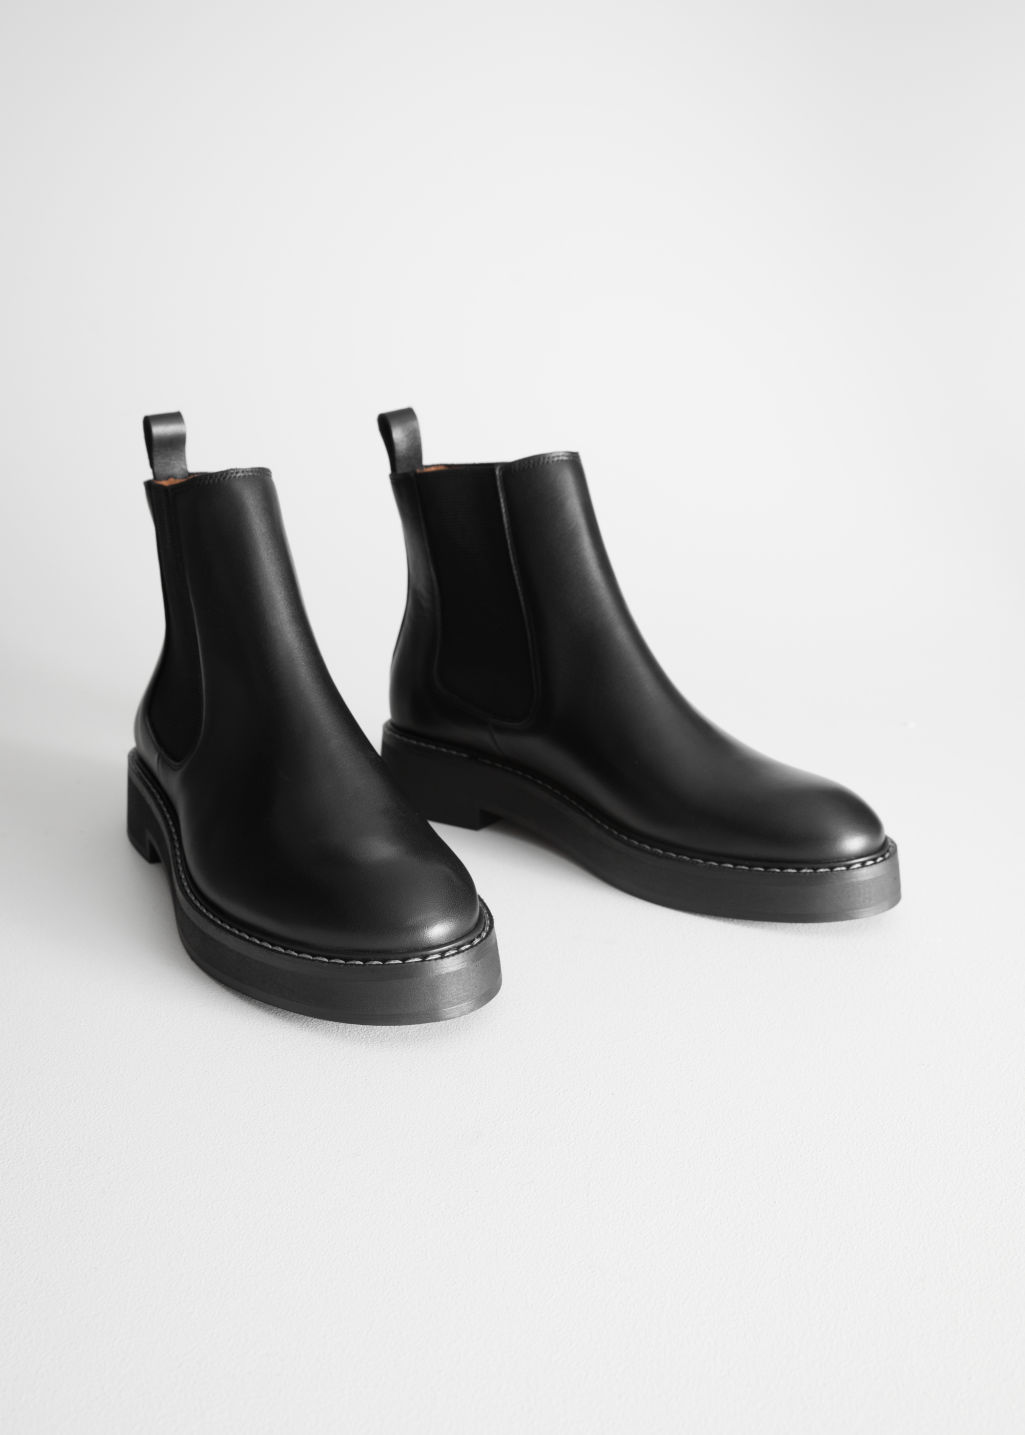 Leather Chelsea Boots - Black - Ankleboots - & Other Stories